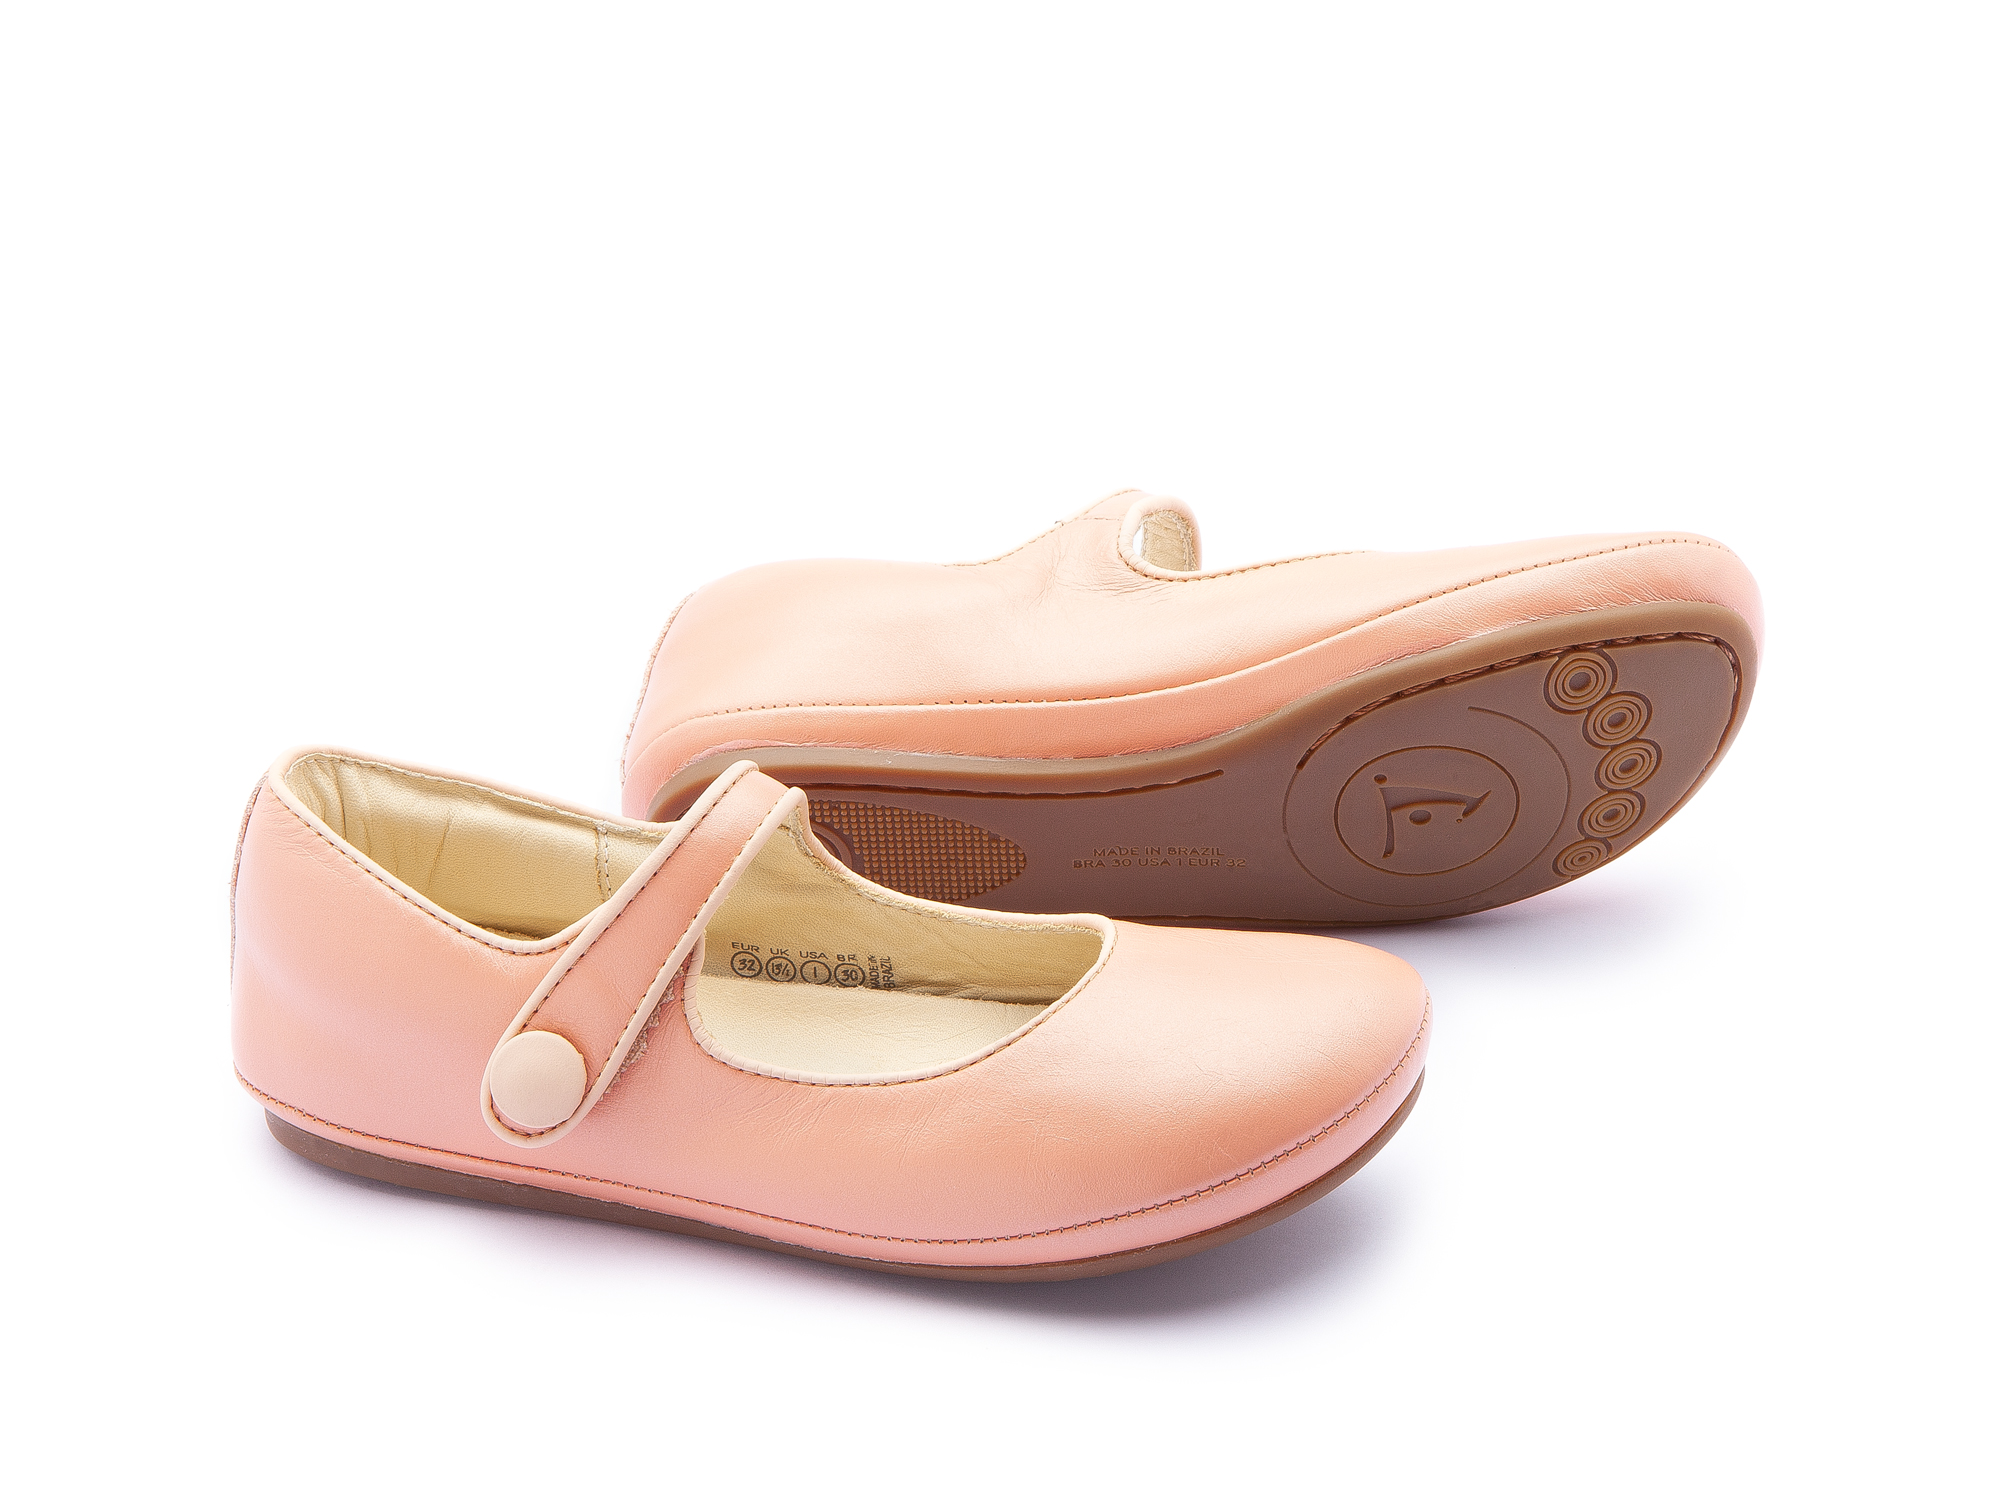 Boneca Gavotte Flamingo/ Papaya Cream Junior 4 à 8 anos - 2